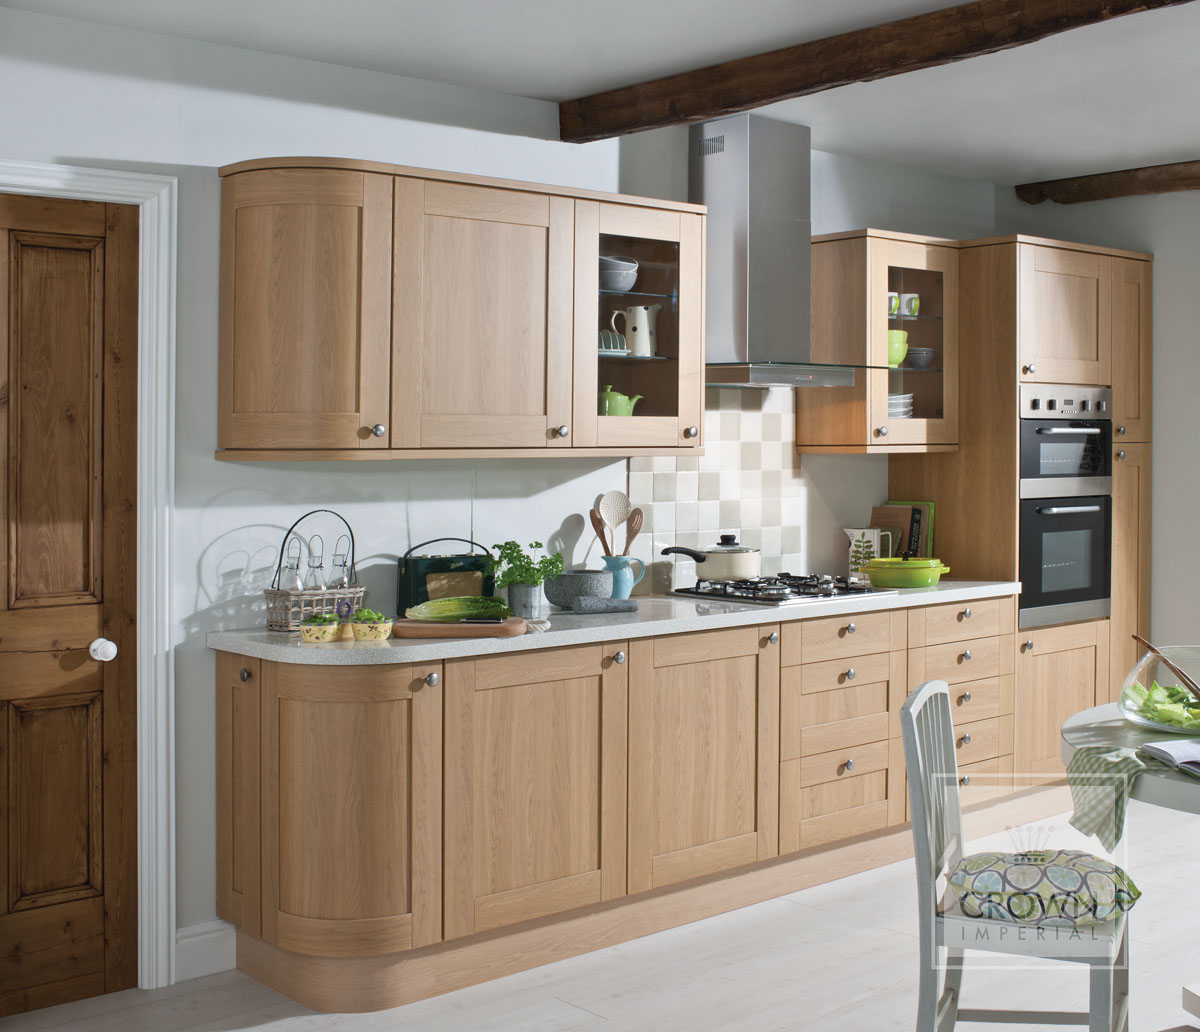 Three top tips for small kitchen design - Small kitchen ...